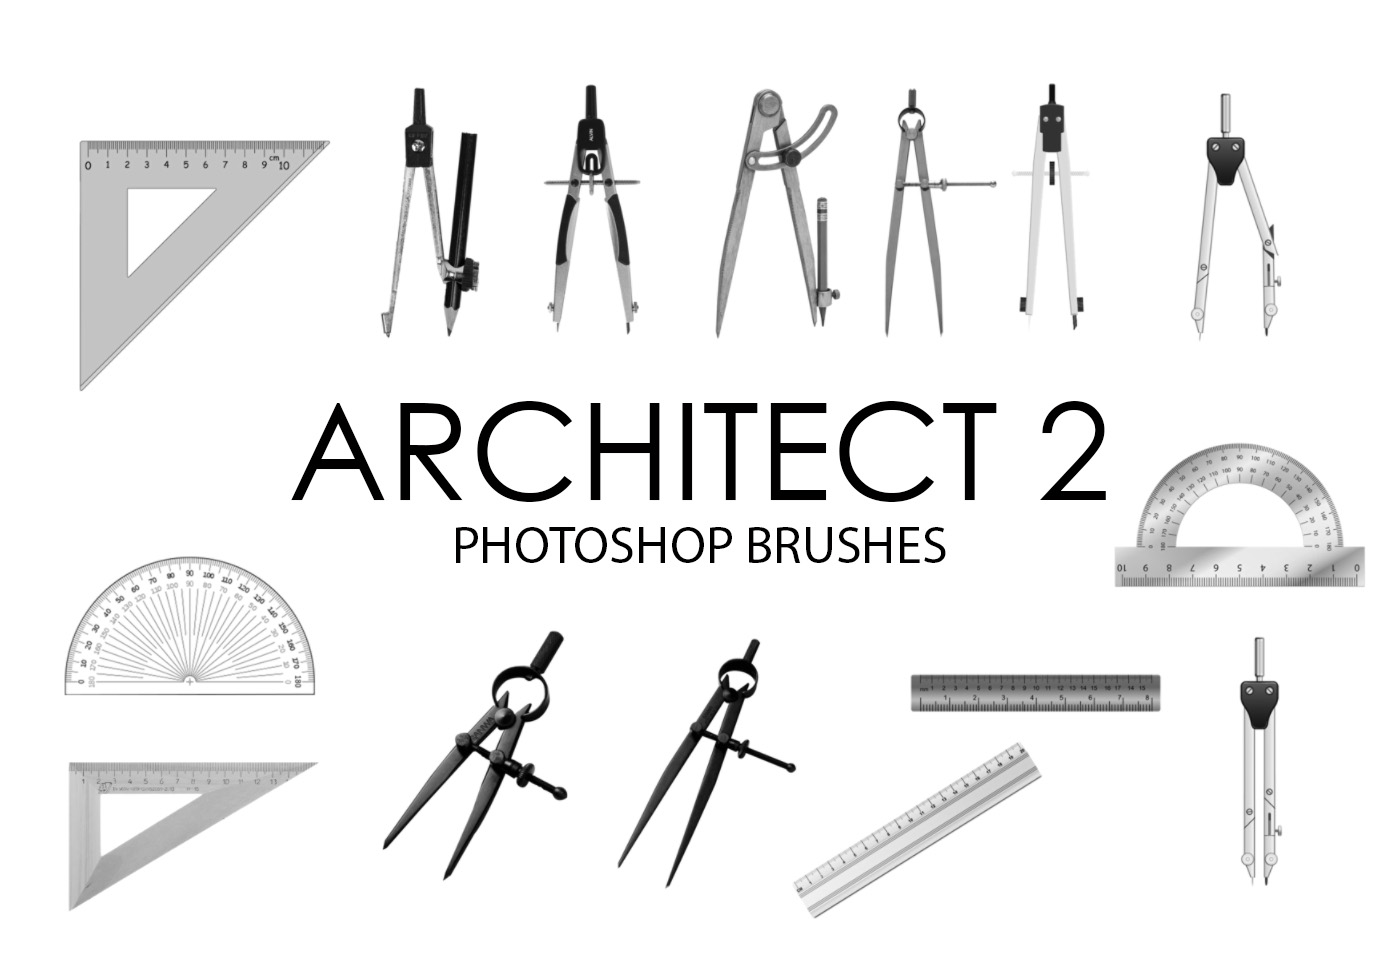 Architect Photoshop Brushes 2